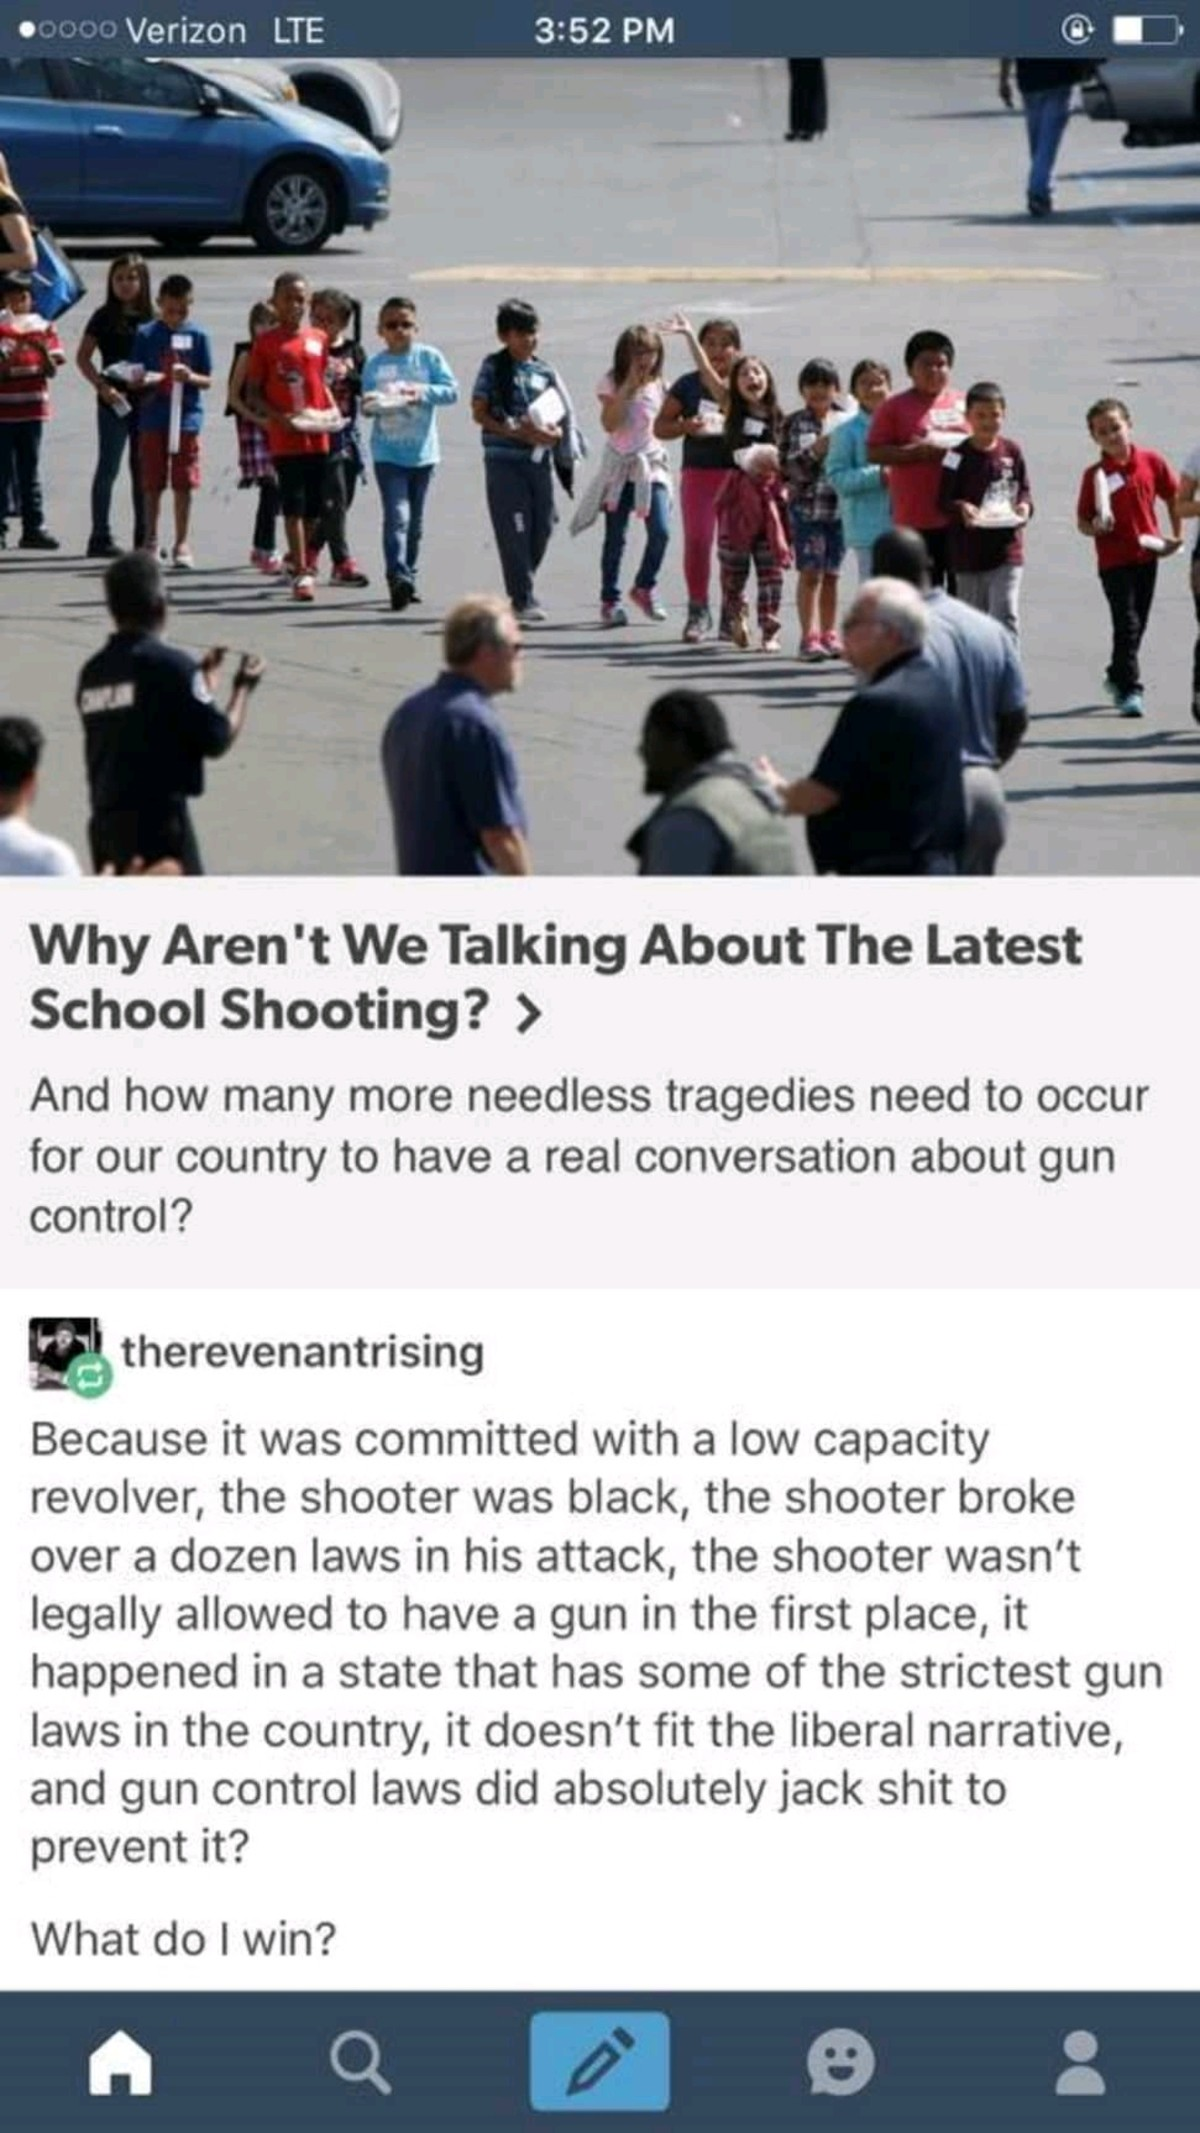 School shooting. Anyone got the source for this? I'm busy doing schoolwork so I'm a bit busy. If you find it mention me 'boneatella' and I'll sticky you.. https://www.huffpost.com/entry/why-arent-we-talking-about-the-latest-mass-shooting_b_58eef70be4b0156697224c71 Took me five seconds by google searching the godda